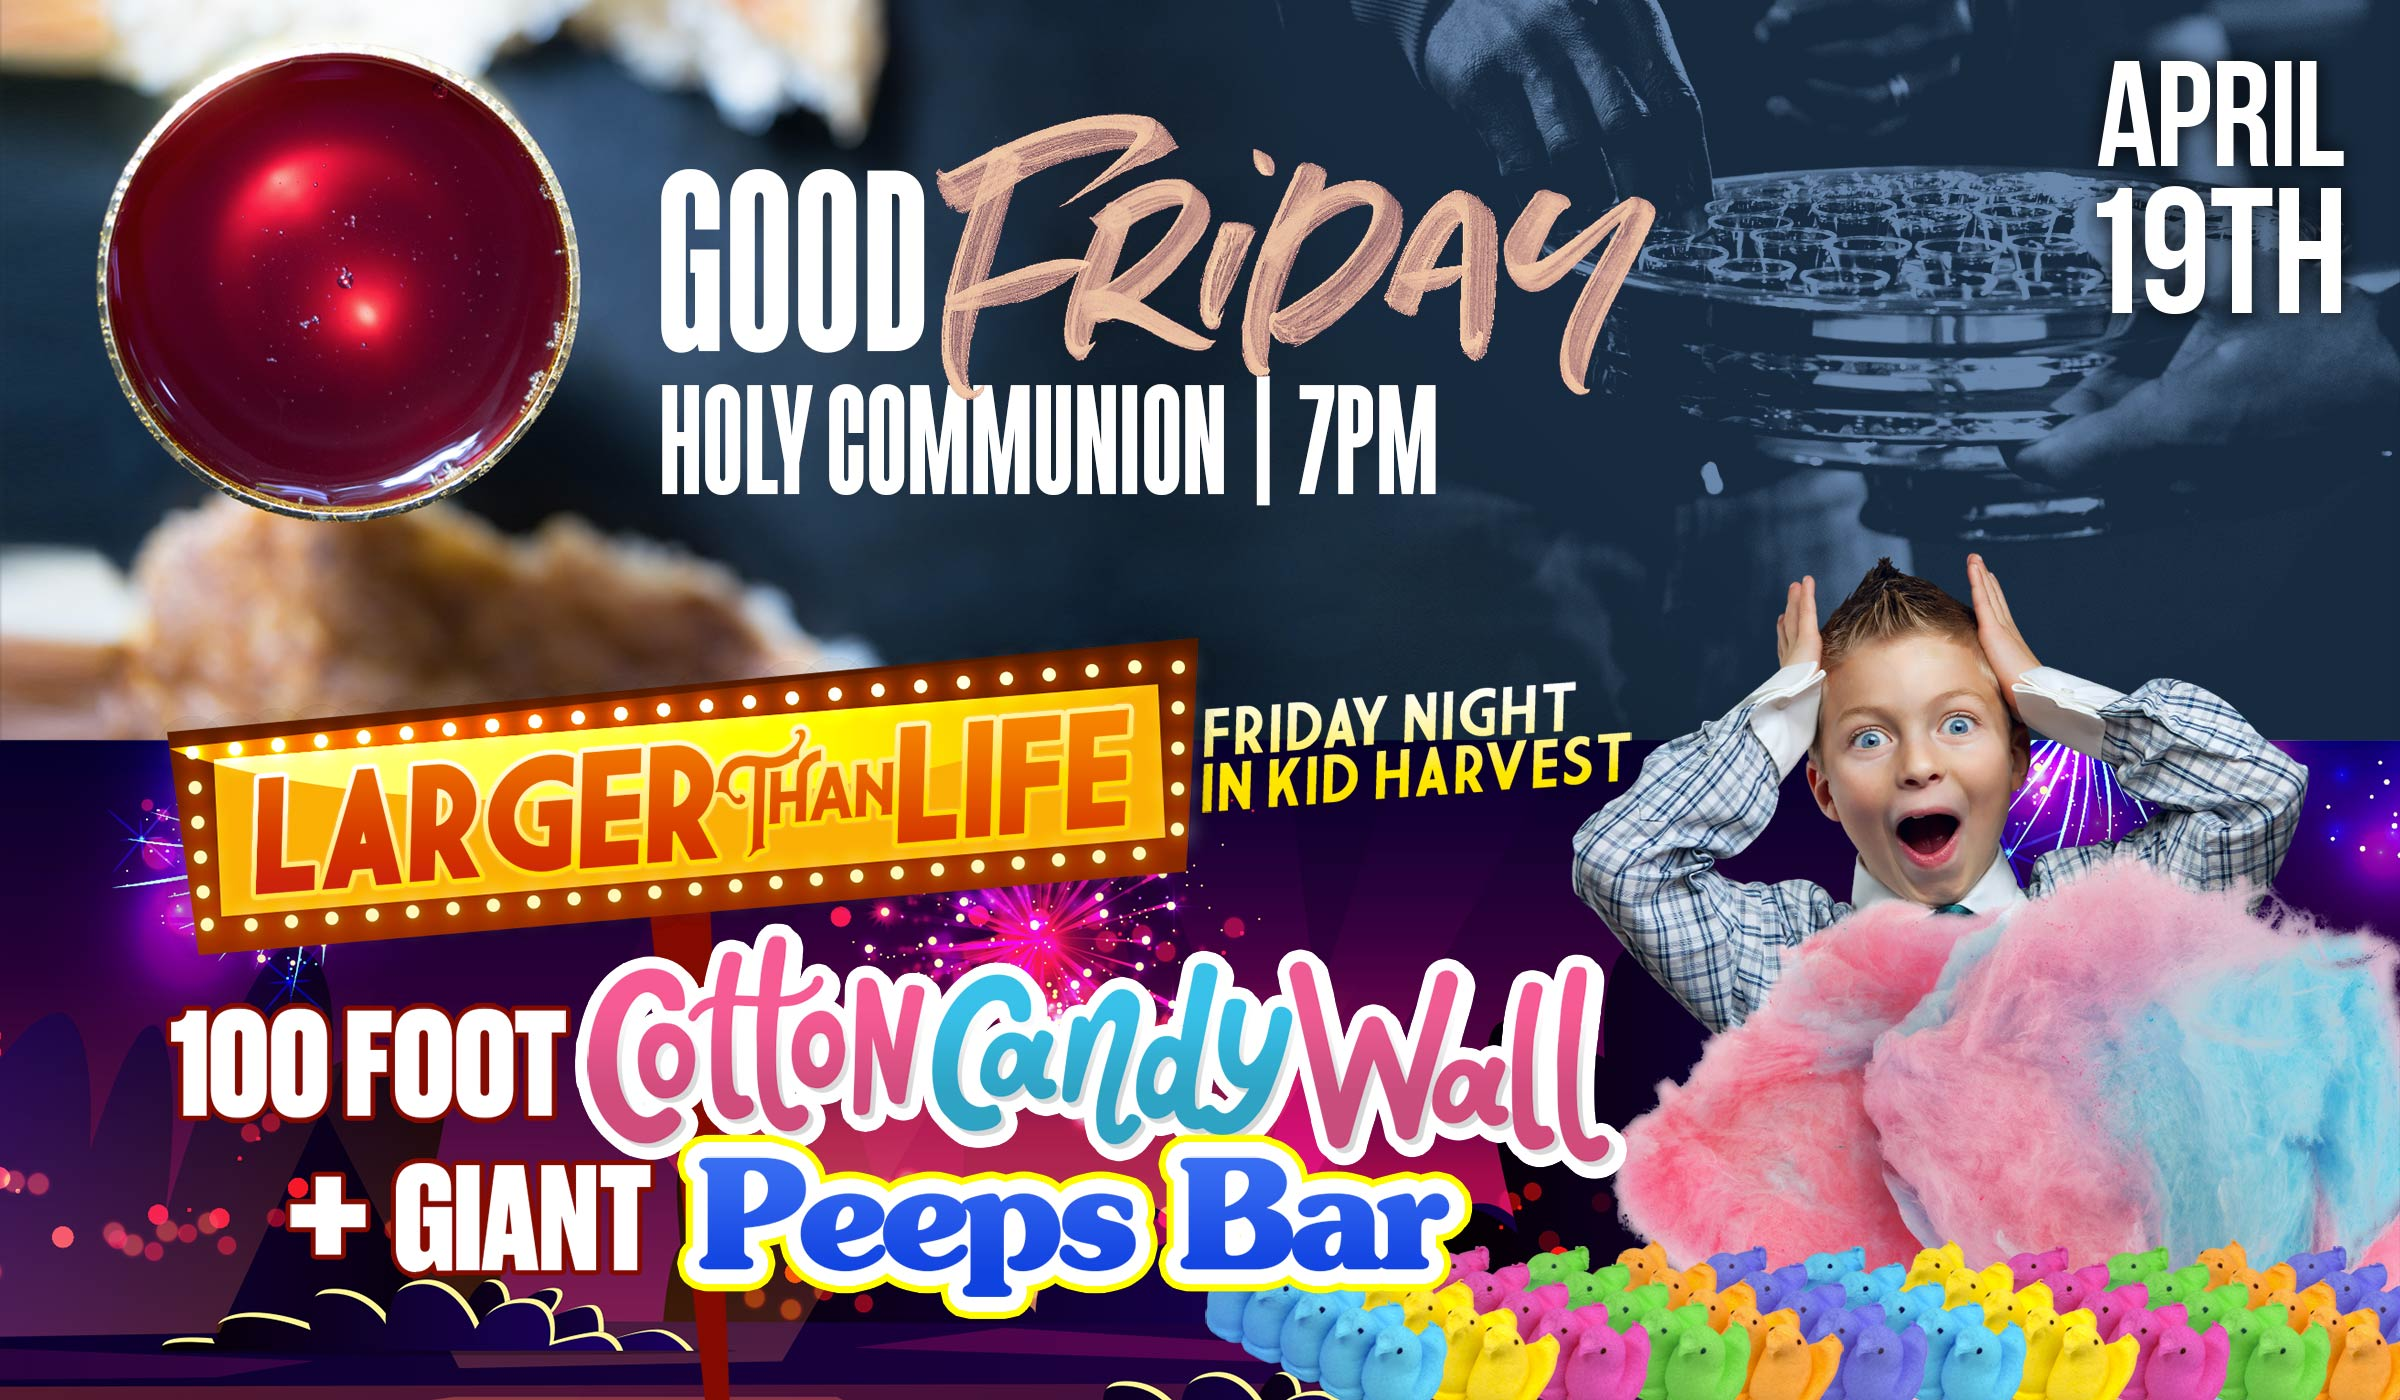 Good Friday Celebration | April 19th at 9PM - WHC.LIFE